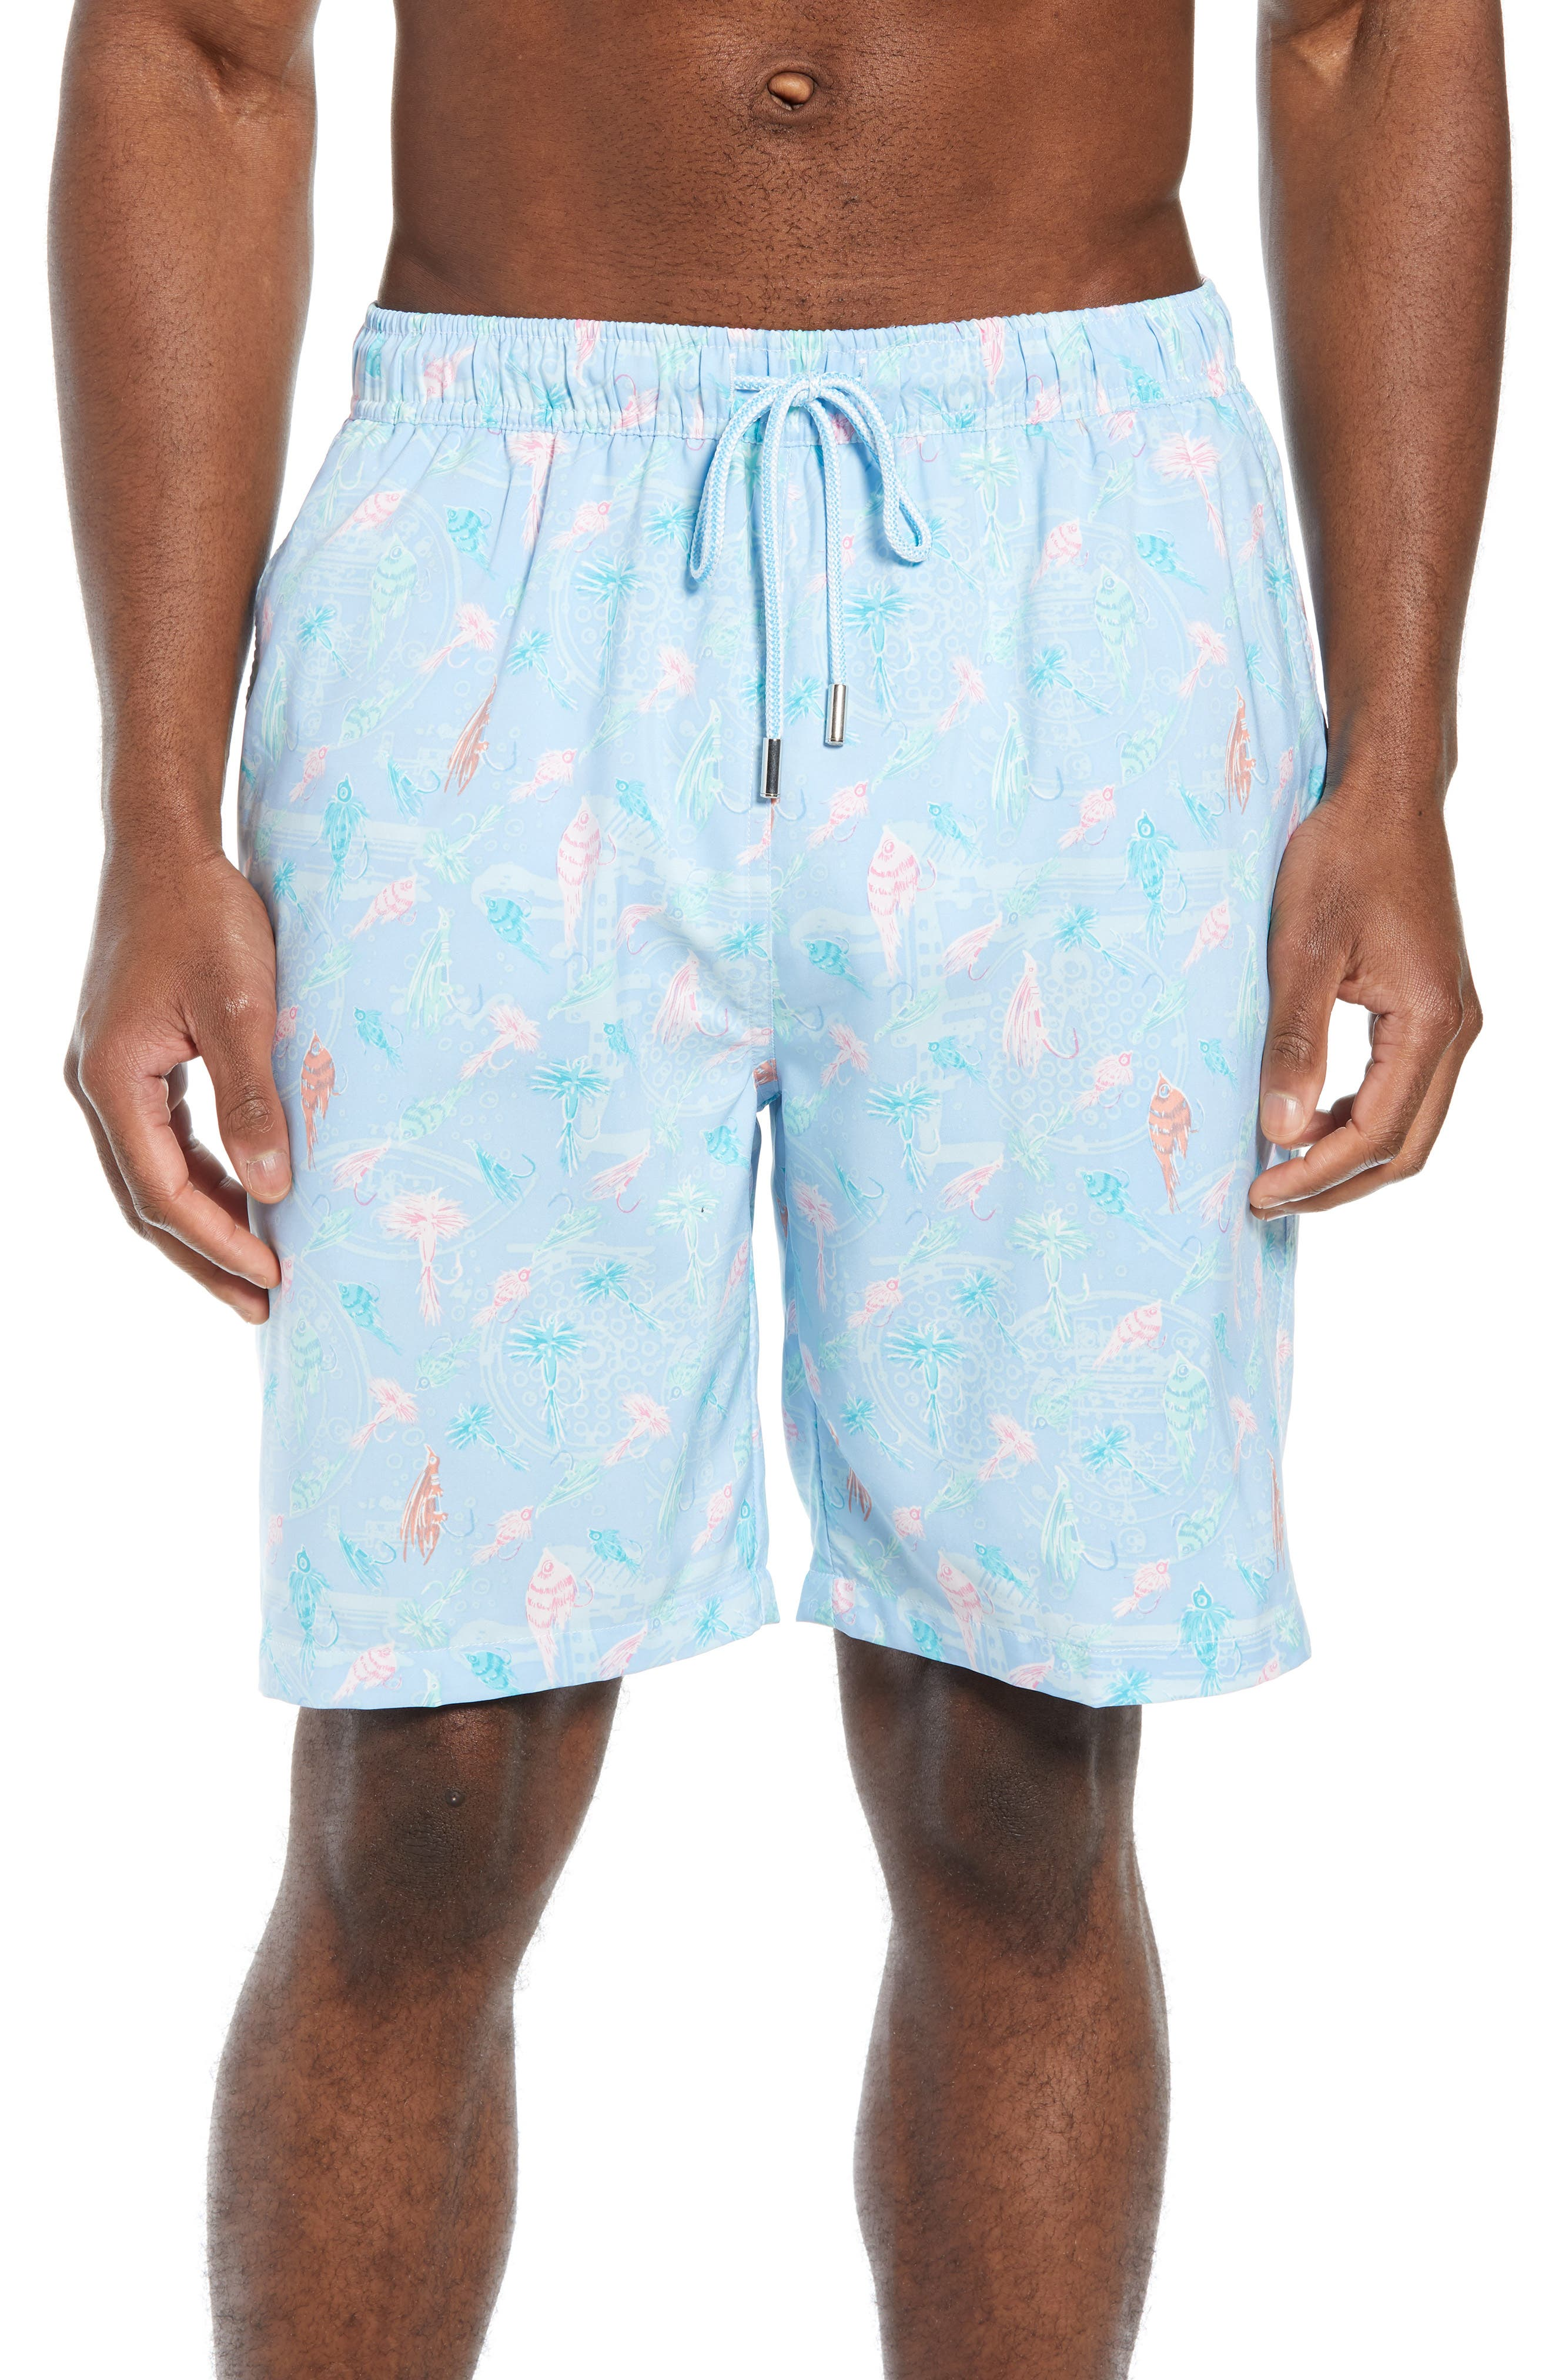 Peter Millar Fly Fish Swim Trunks, Blue